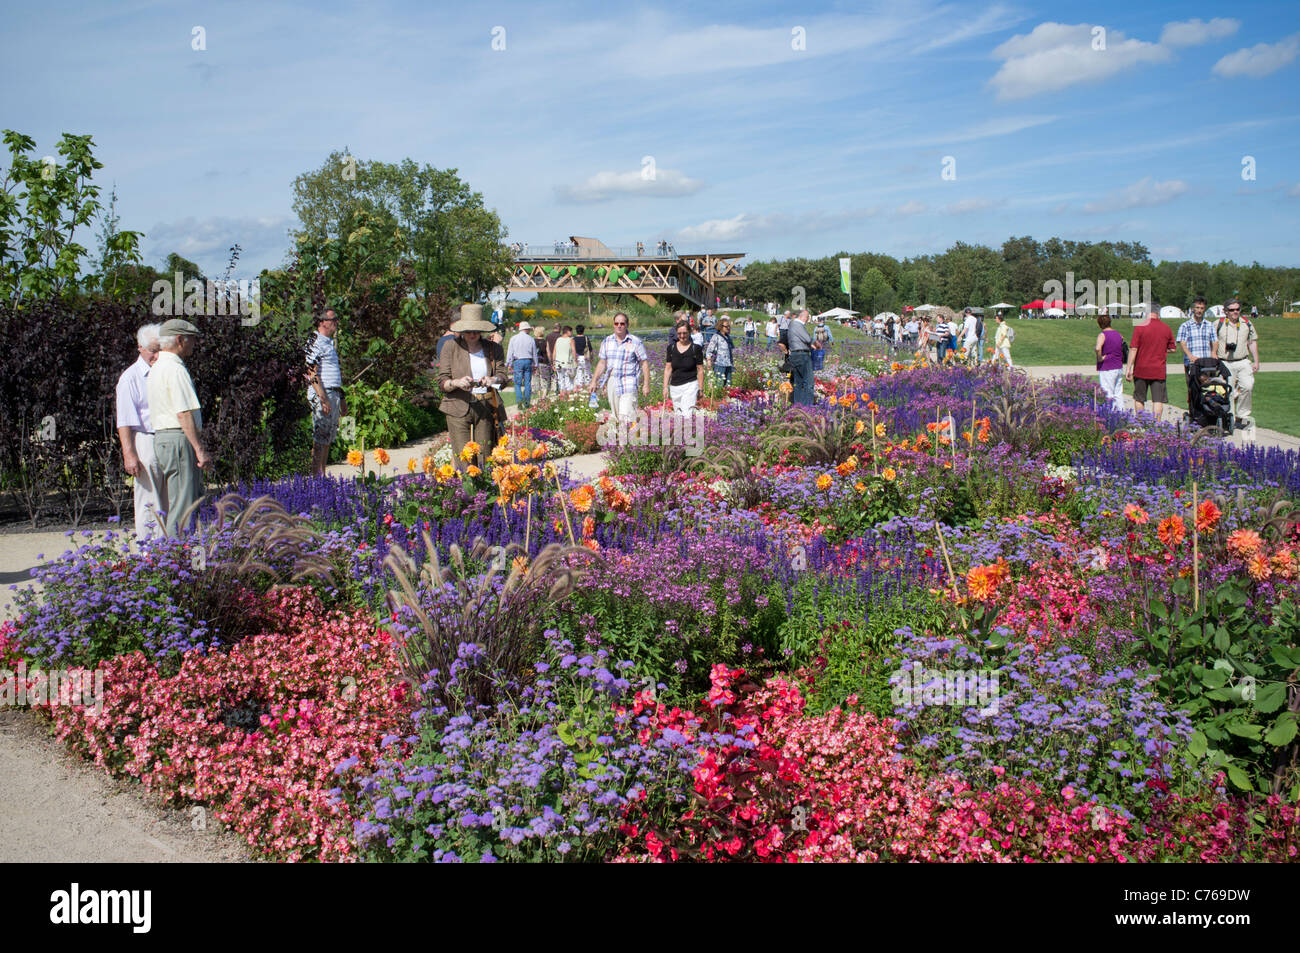 The Federal Horticultural Show or BUGA Bundesgartenschau held in Koblenz Germany 2011 - Stock Image